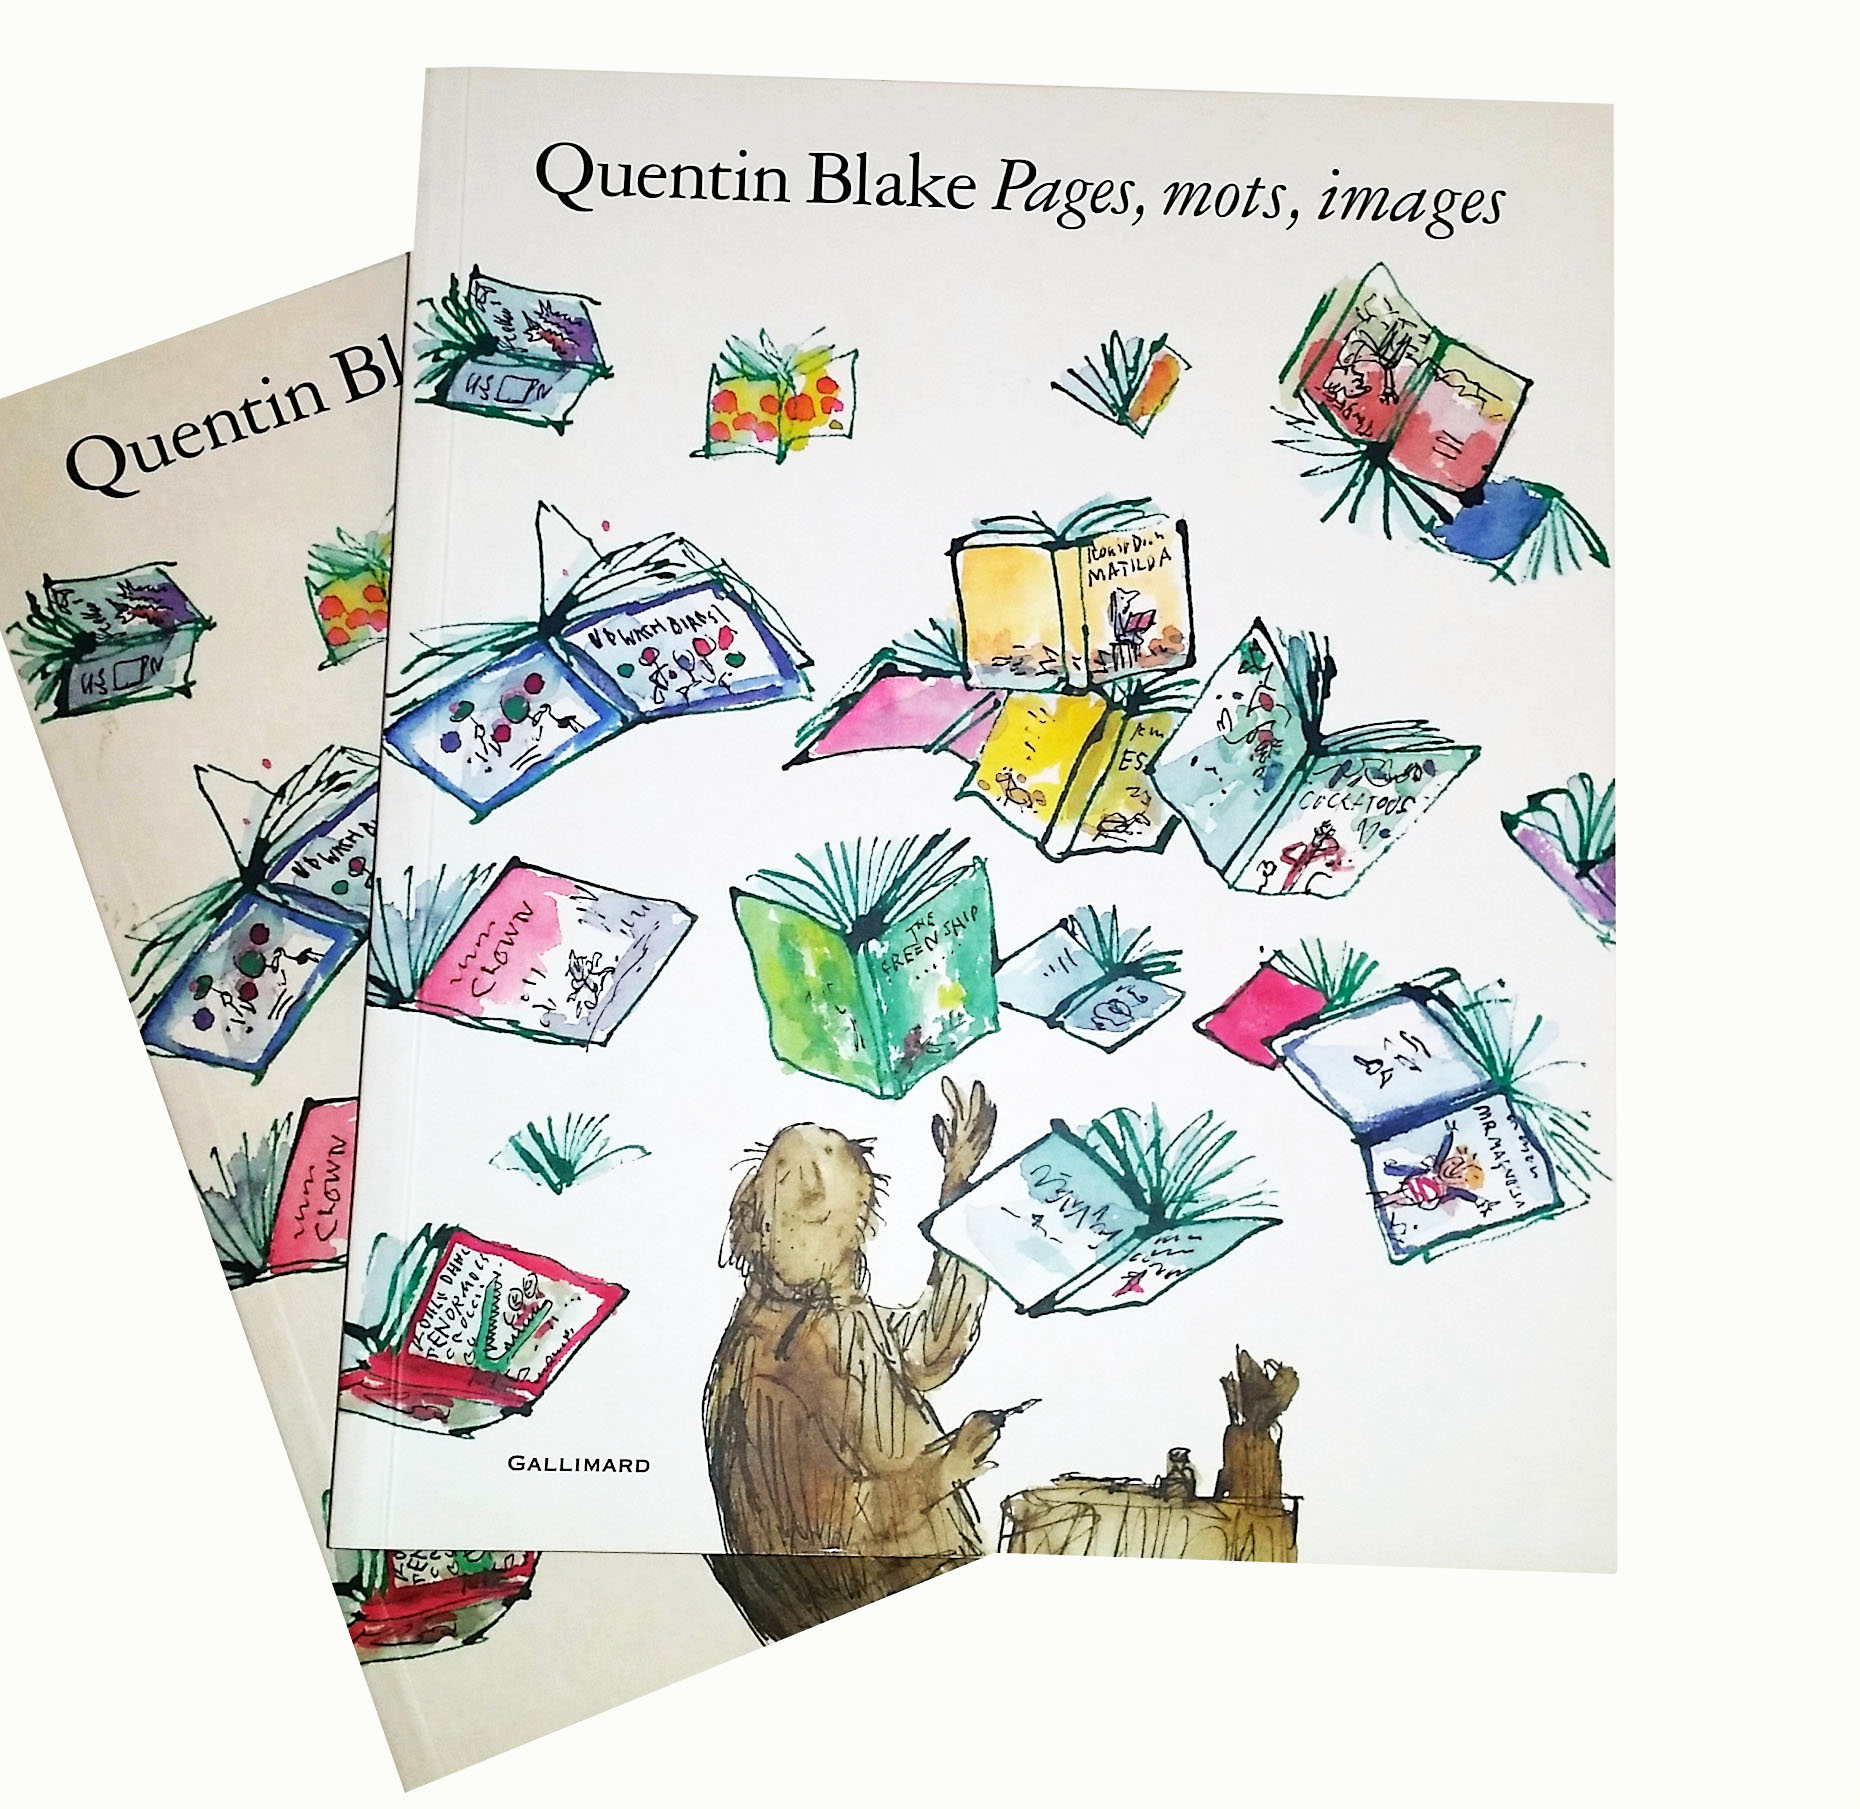 Quentin Blake Pages, mots, images